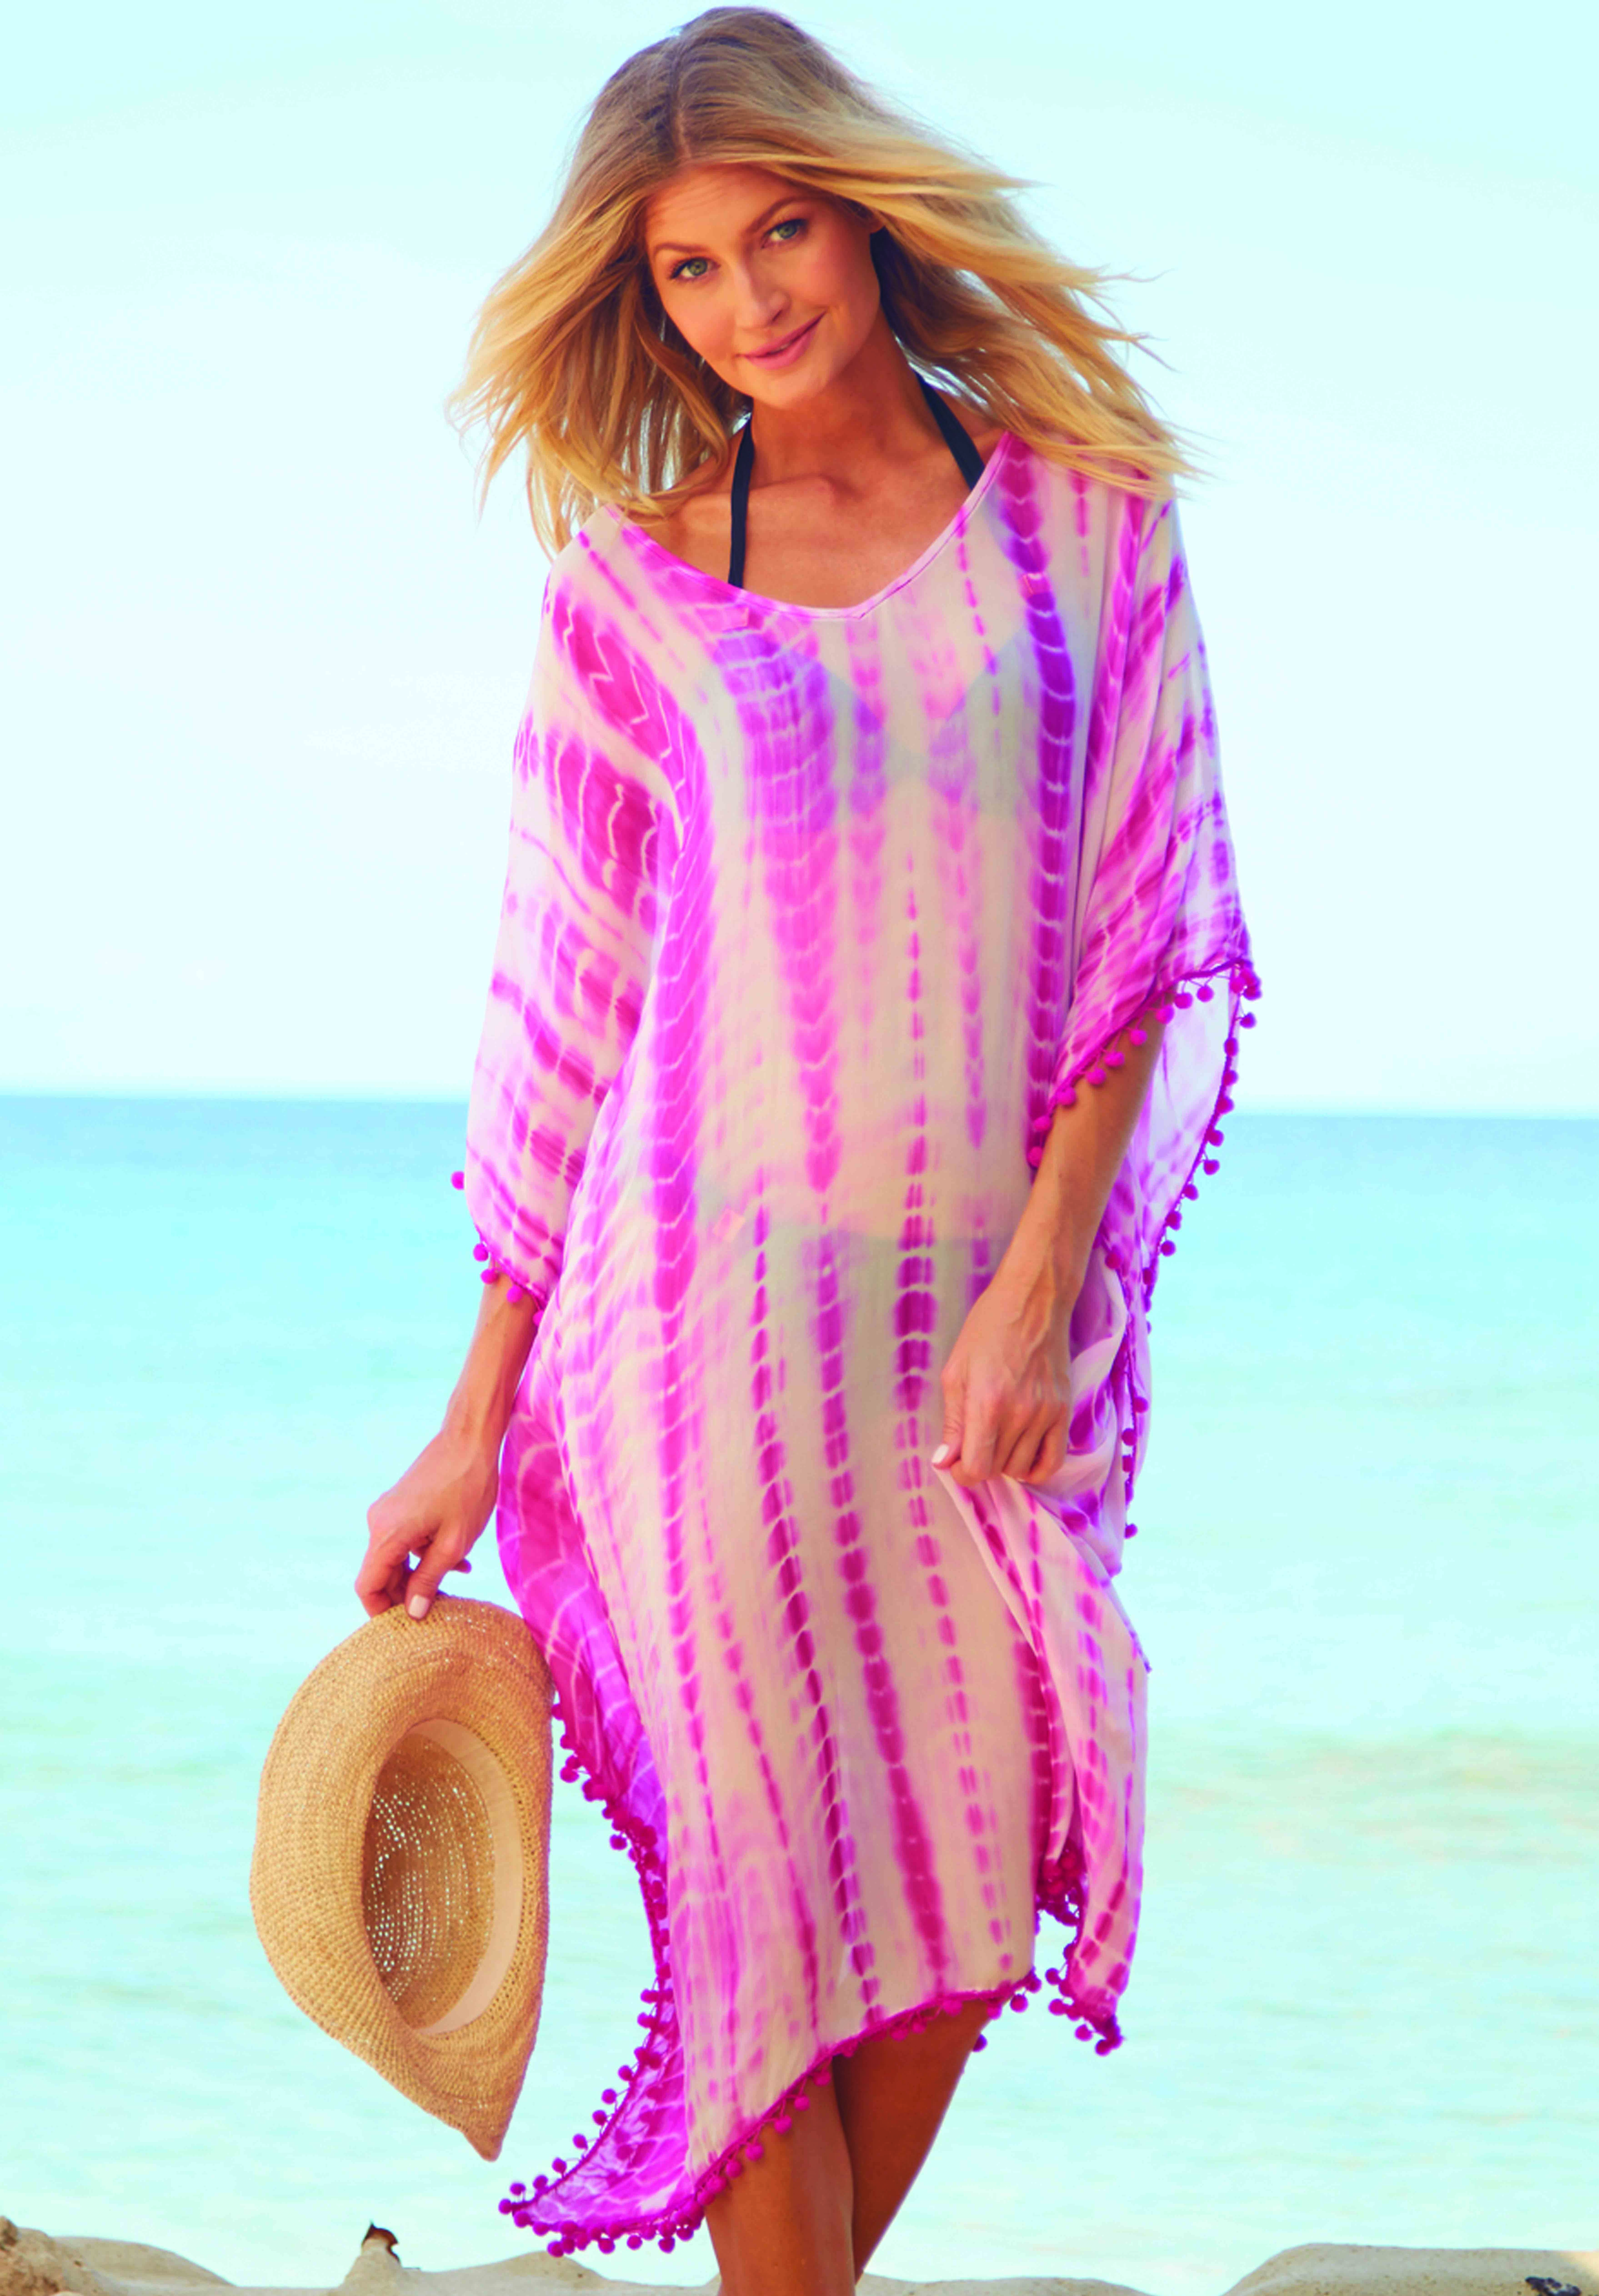 e83e56584e KIRA TIE DYE KAFTAN PINK - £70 - STYLE REFERENCE 17251 A classic kaftan  shape that has been given a hippie chic twist with a bold tie dye print in  rich ...